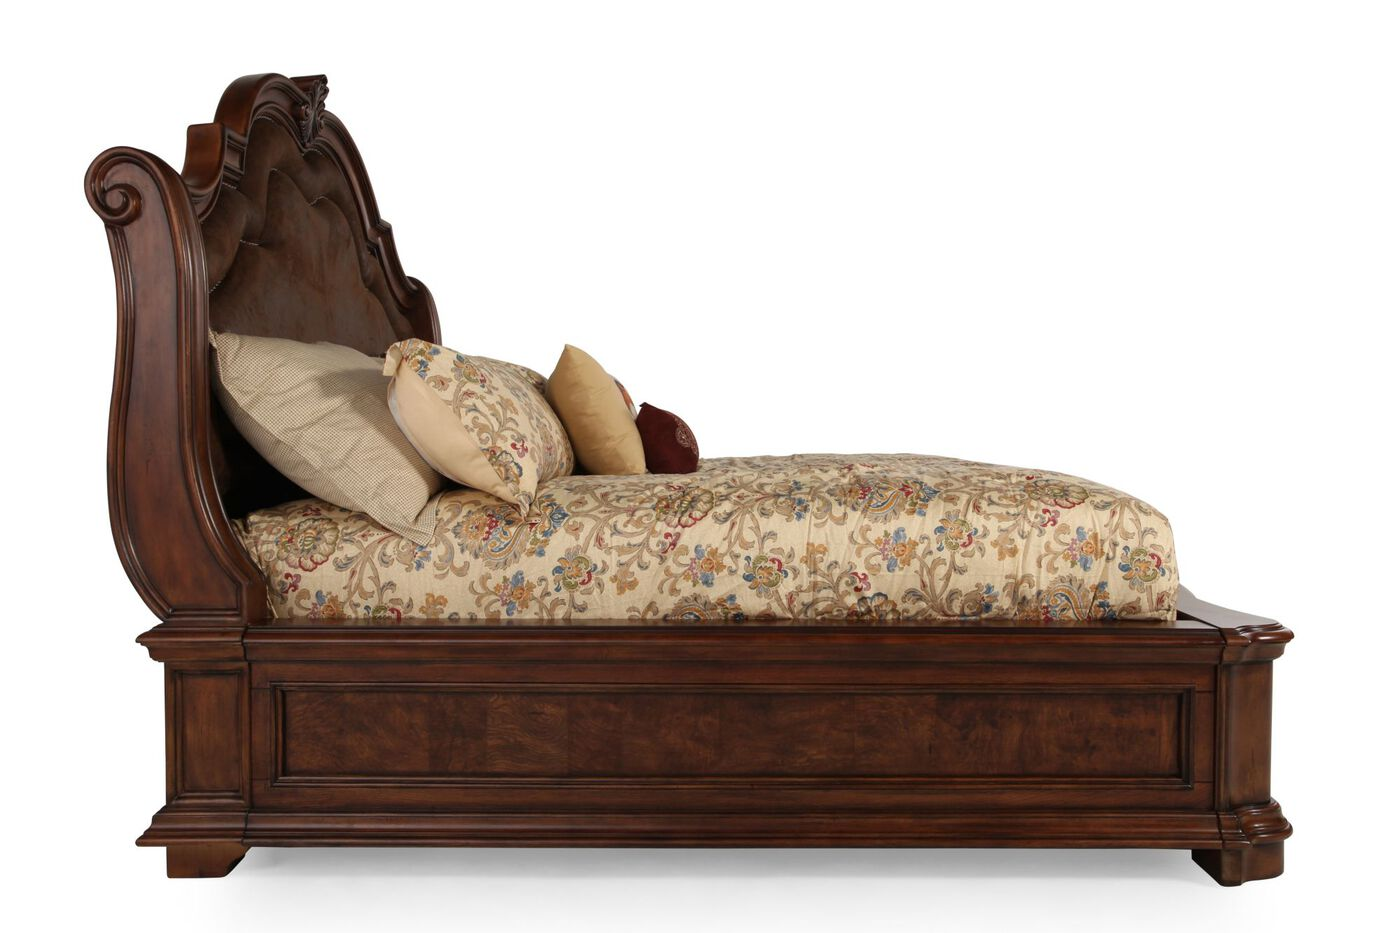 San Mateo Bedroom Furniture Pulaski San Mateo Sleigh Bed Mathis Brothers Furniture